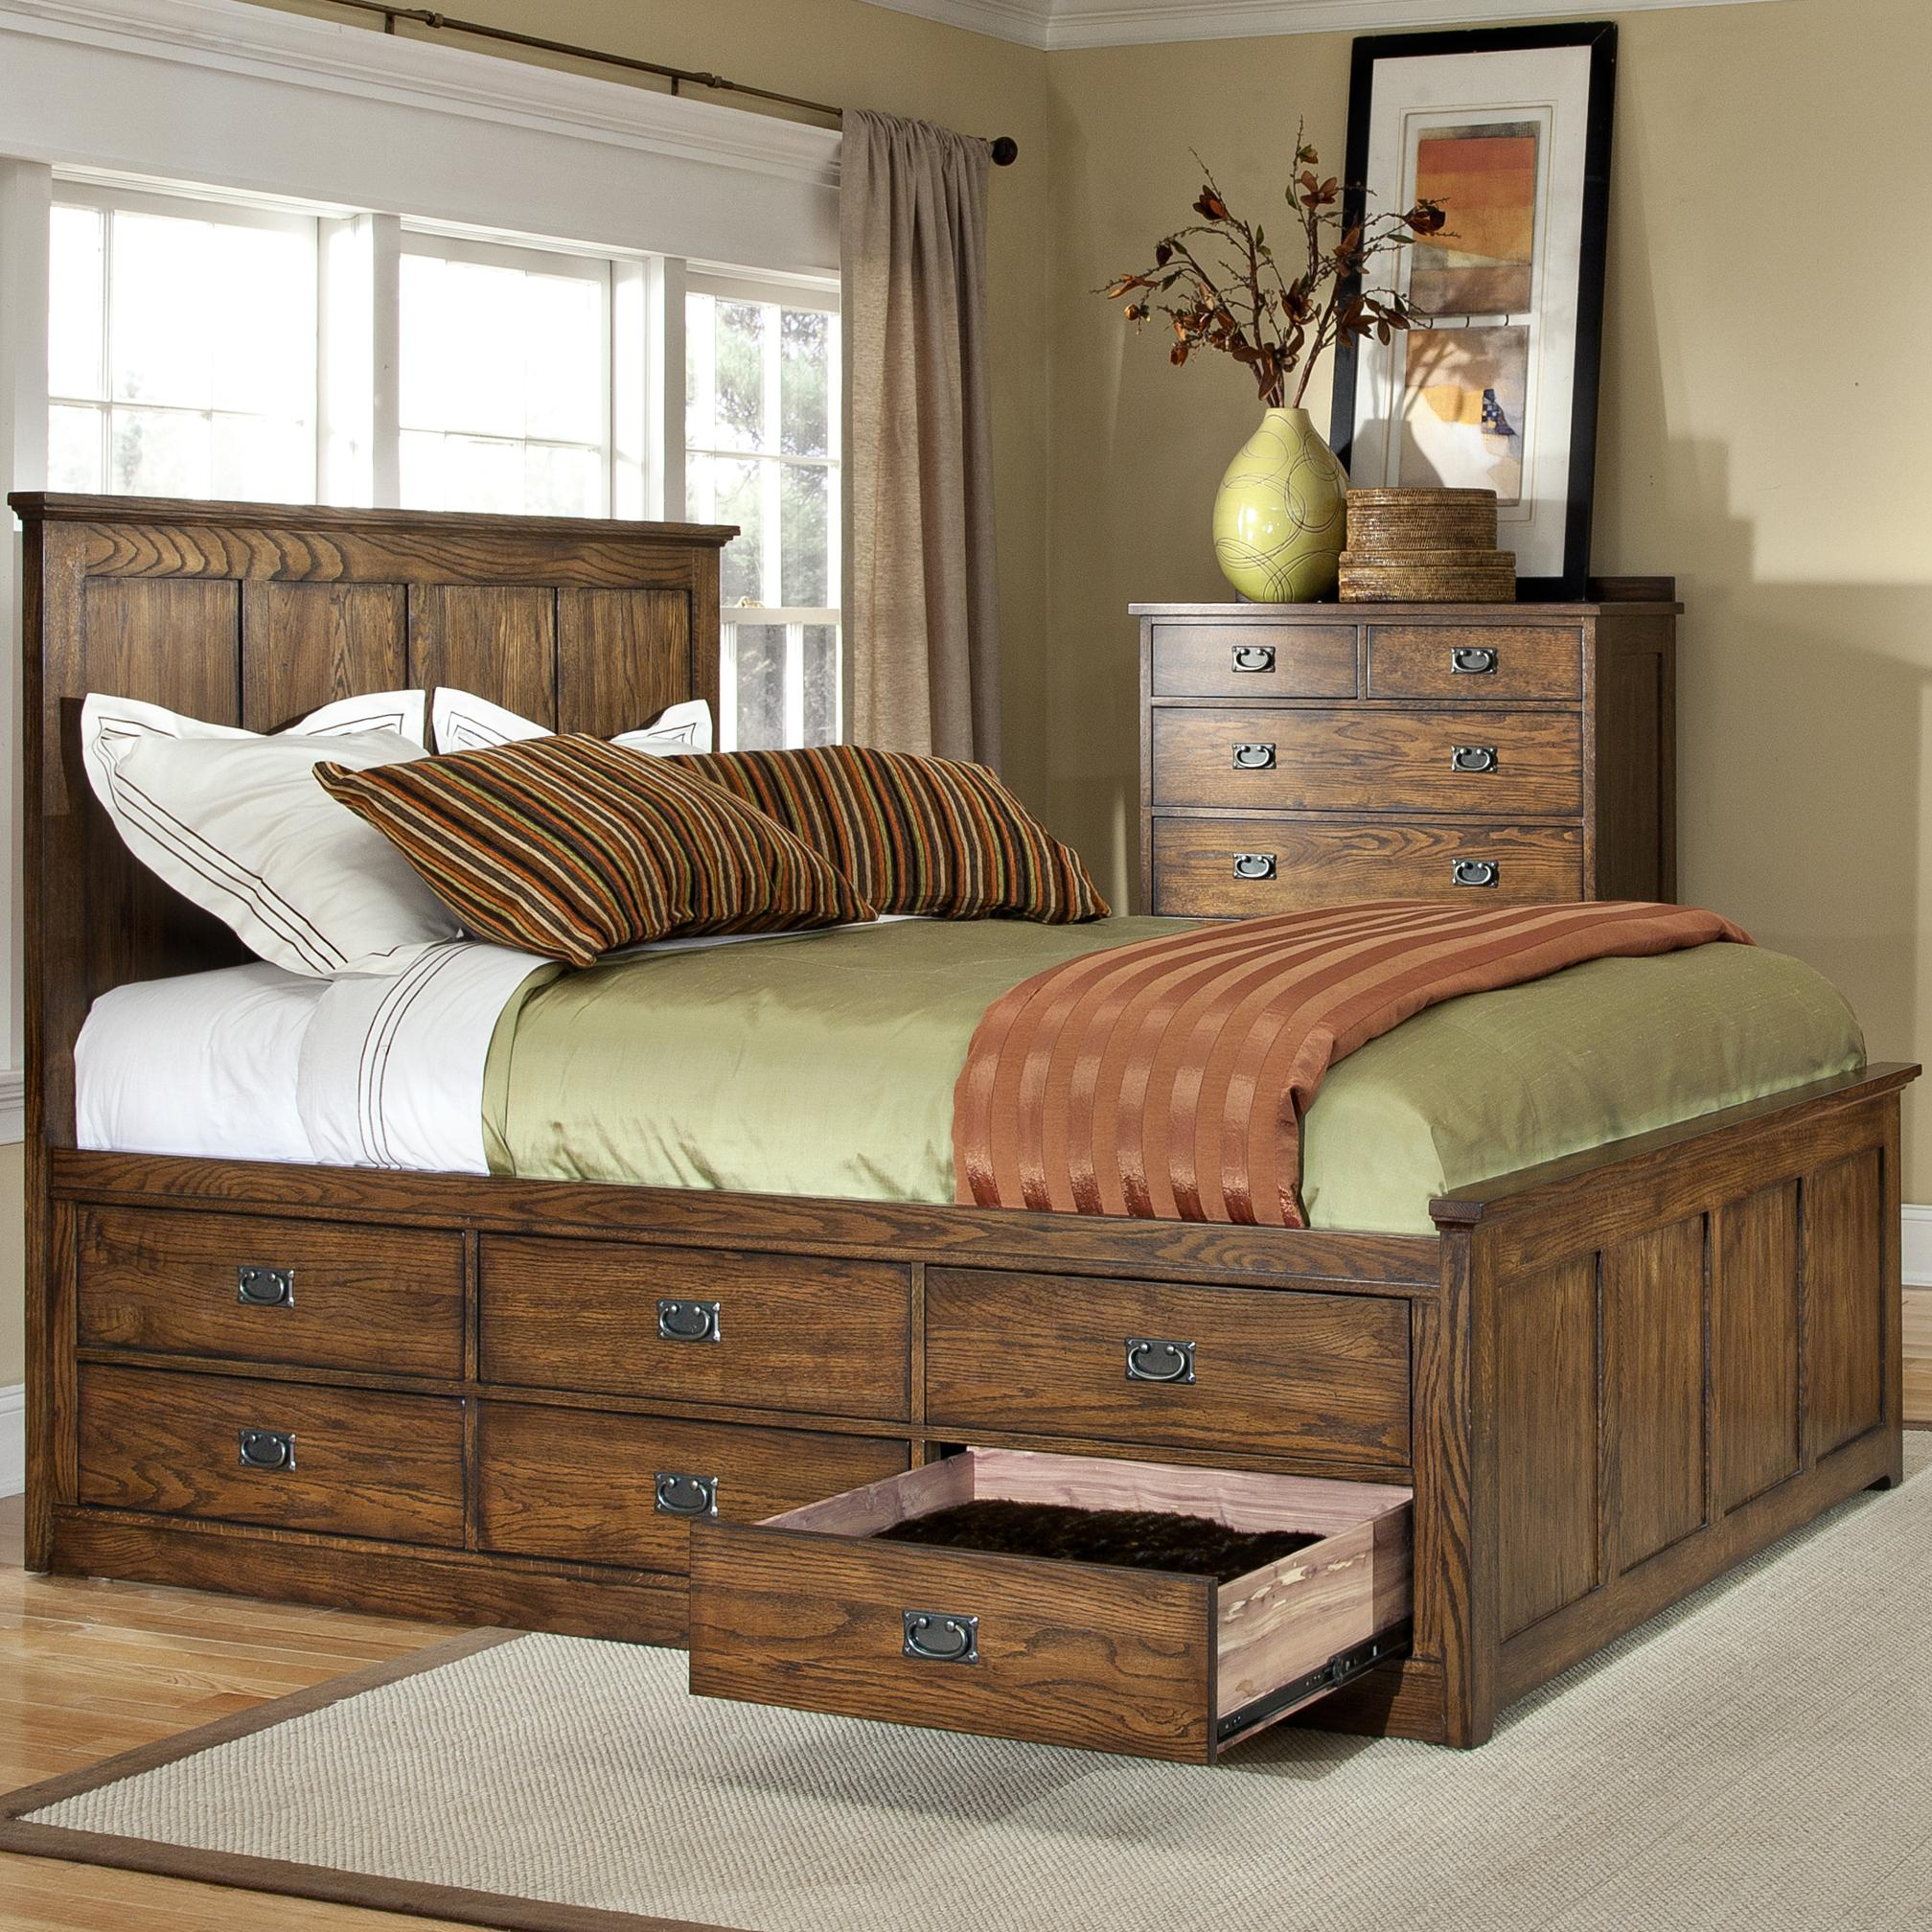 Ordinaire Intercon Oak Park King Bed With 12 Storage Drawers   Item Number: OP BR